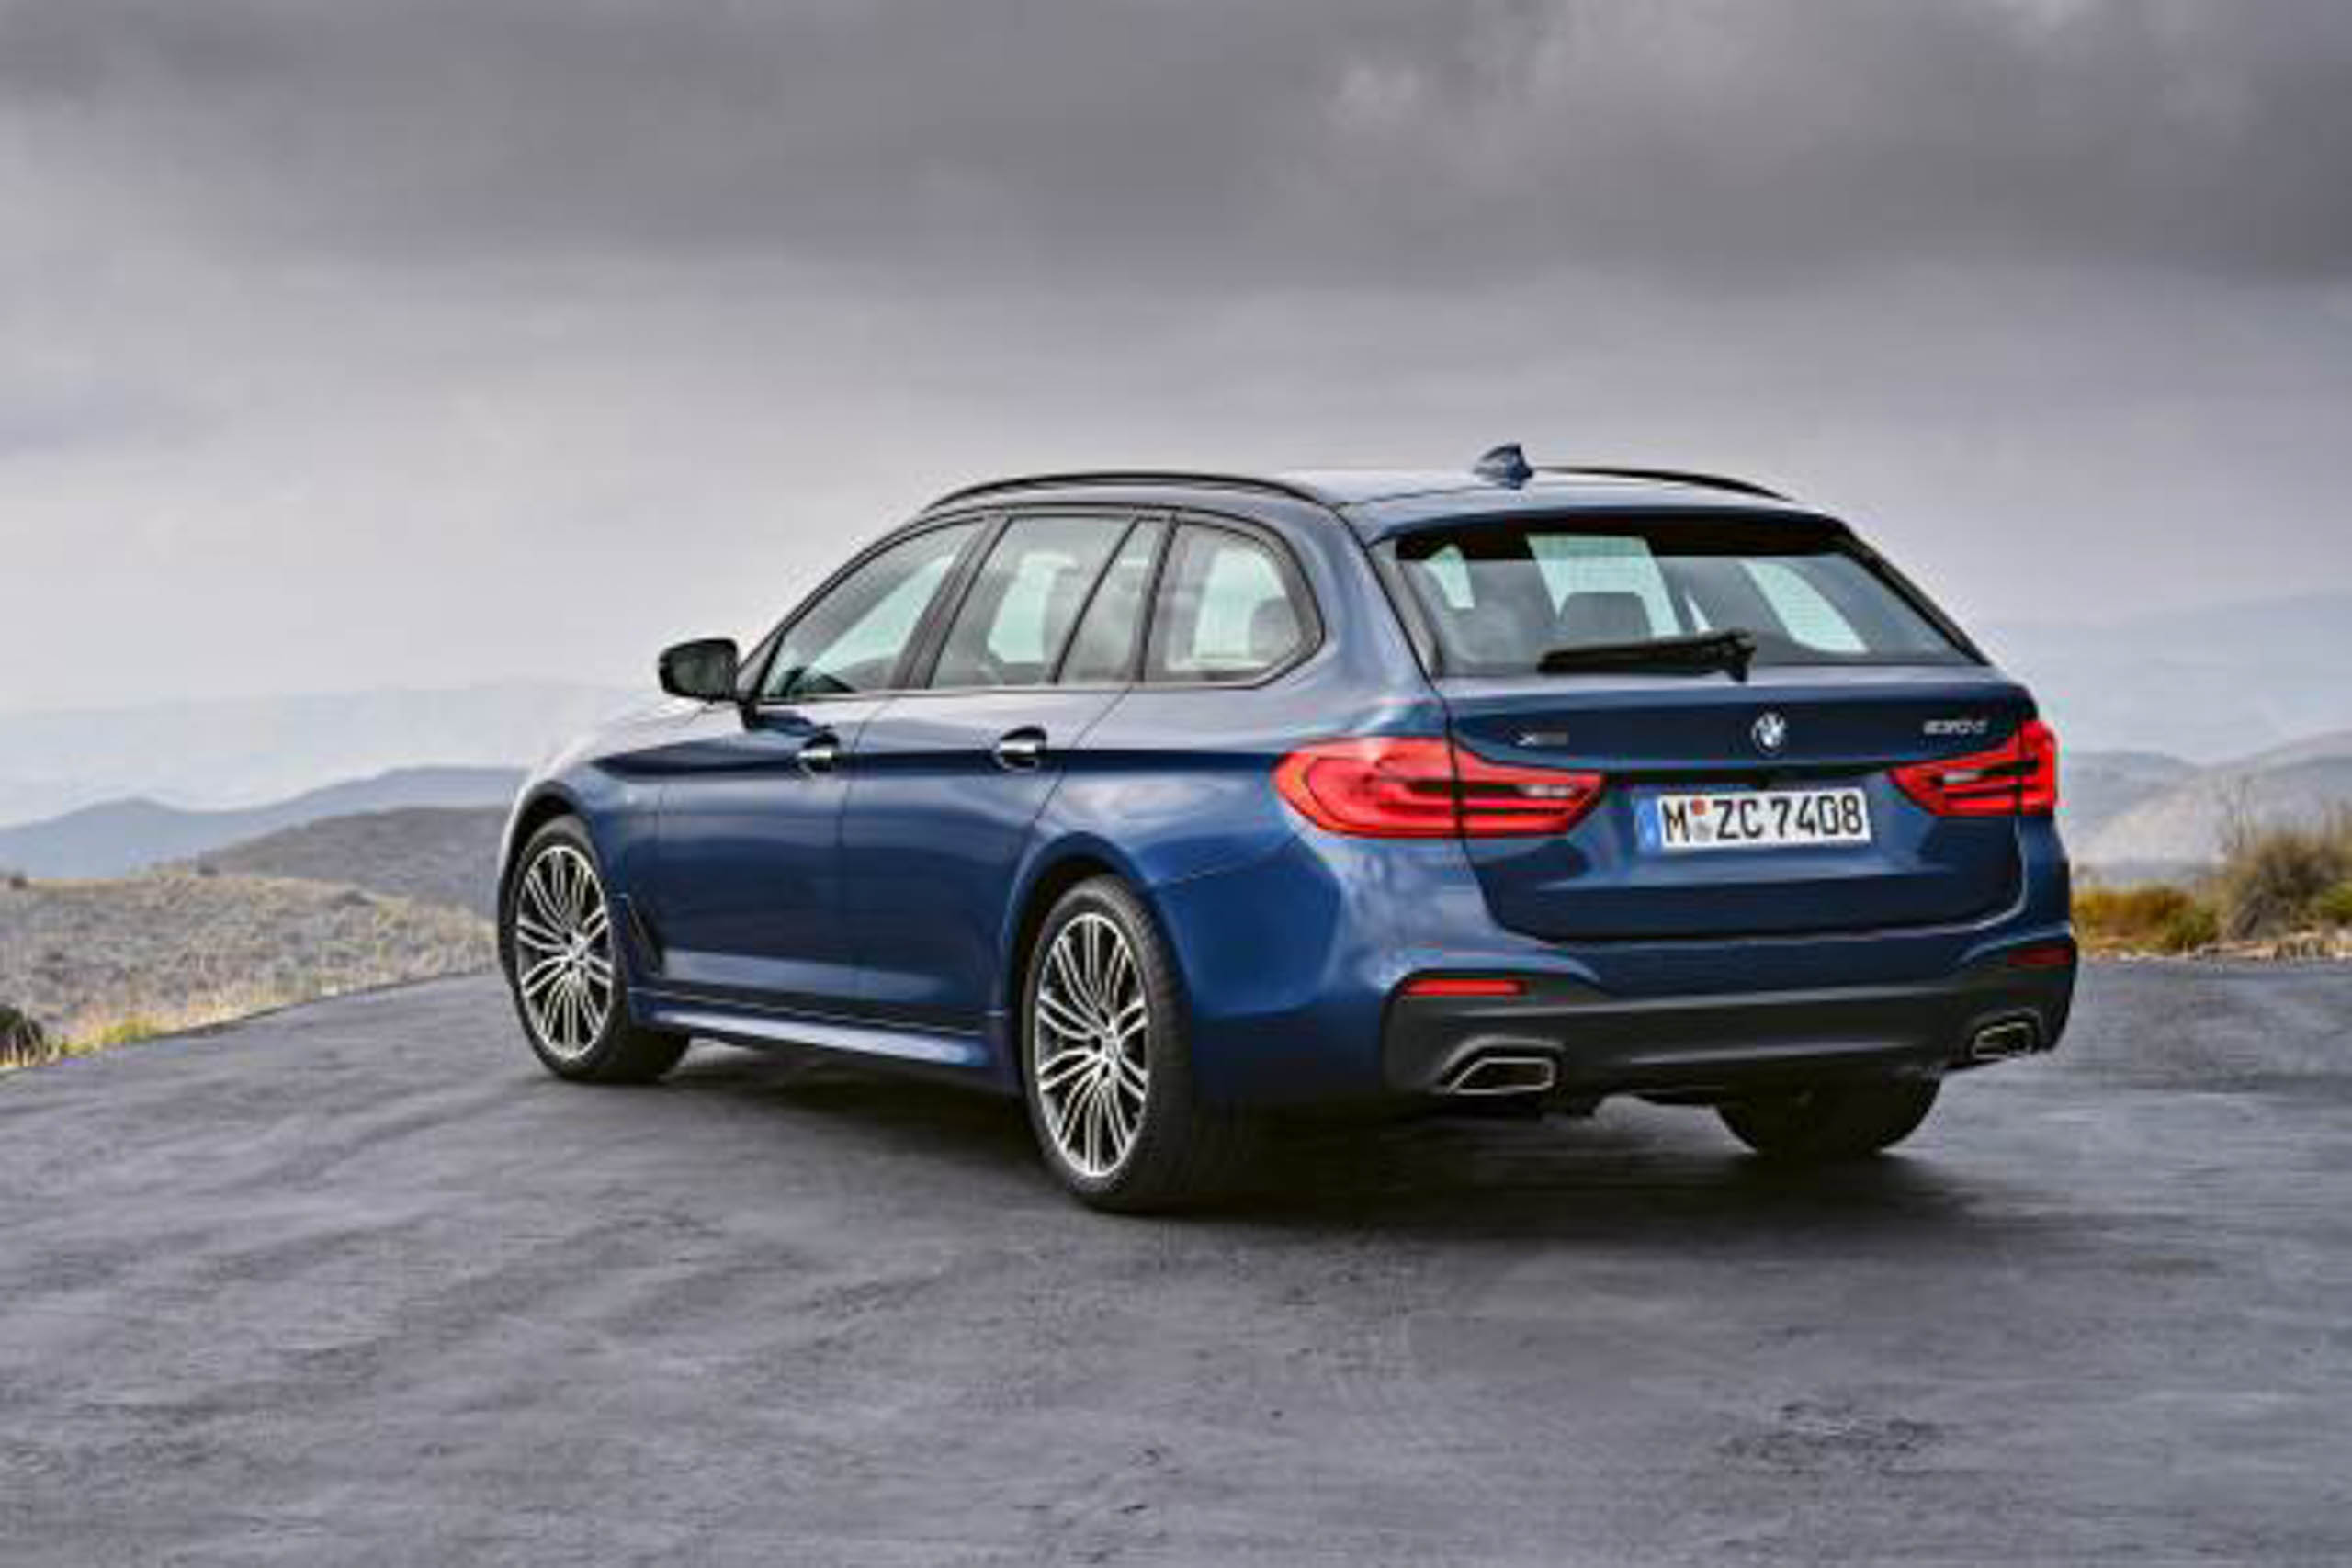 g31 bmw 5 series touring unveiled 1 700 litre boot image. Black Bedroom Furniture Sets. Home Design Ideas